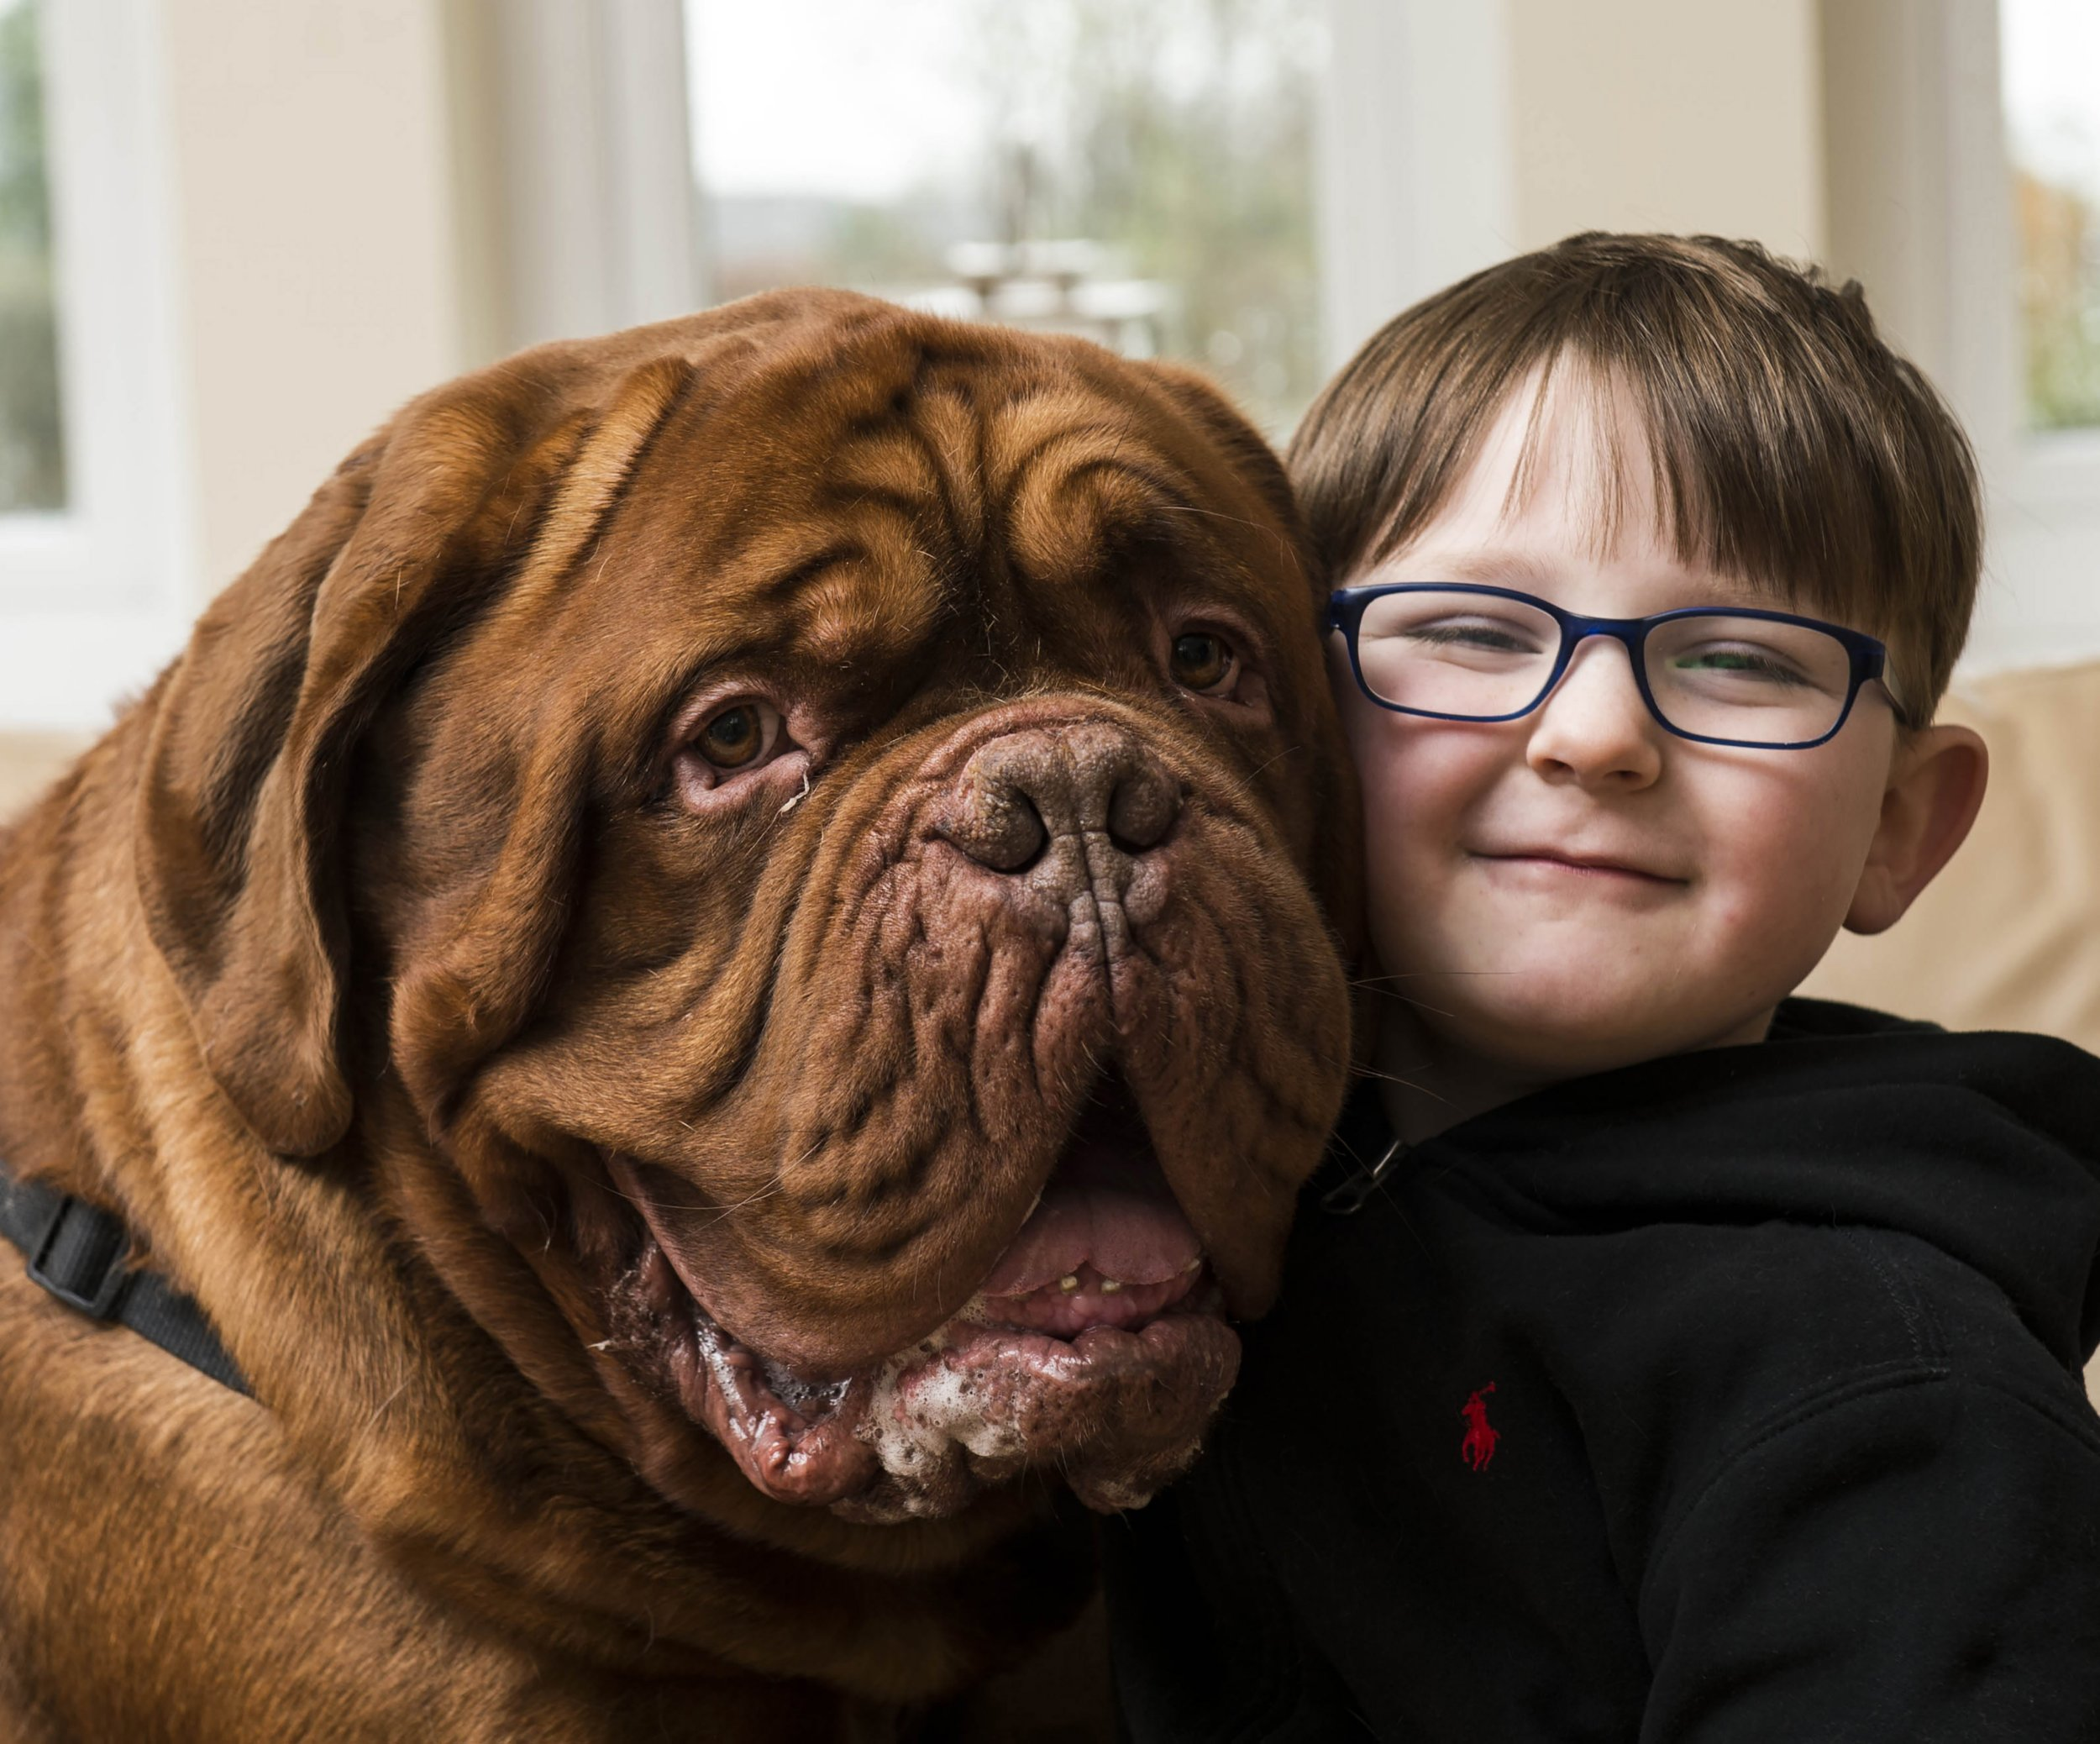 PIC BY CHRISTIAN COOKSEY/MERCURY PRESS (PICTURED: MARK CANNON, 5, WITH HIS DOGUE DE BORDEAUX, ALFIE) The parents of a visually-impaired youngster believe their huge family DOG saved their son from going BLIND ñ by showing them he had a dangerous condition with his eyes. Mark Cannon, five, and his 13-STONE pet Alfie have been inseparable since he was born but his family could never explain why the dog always walked on Markís right. Despite being baffled by Alfieís unusual habit, the family had Markís eyes checked and a school optometrist diagnosed him with astigmatism in his right eye last April ñ meaning he was almost blind in that eye. It was then Mark's mum and dad Sharlene and Mark Snr, both 42, realised the giant Dogue de Bordeaux always stood to his right in a bid to act as a guide. Eye doctors told the family Mark could have gone completely blind if they had not caught the condition when they did. And Alfie even used his doctor's instinct to sniff out cancer in the familyís other Dogue de Bordeaux Cass, who sadly died last month aged 11. SEE MERCURY COPY